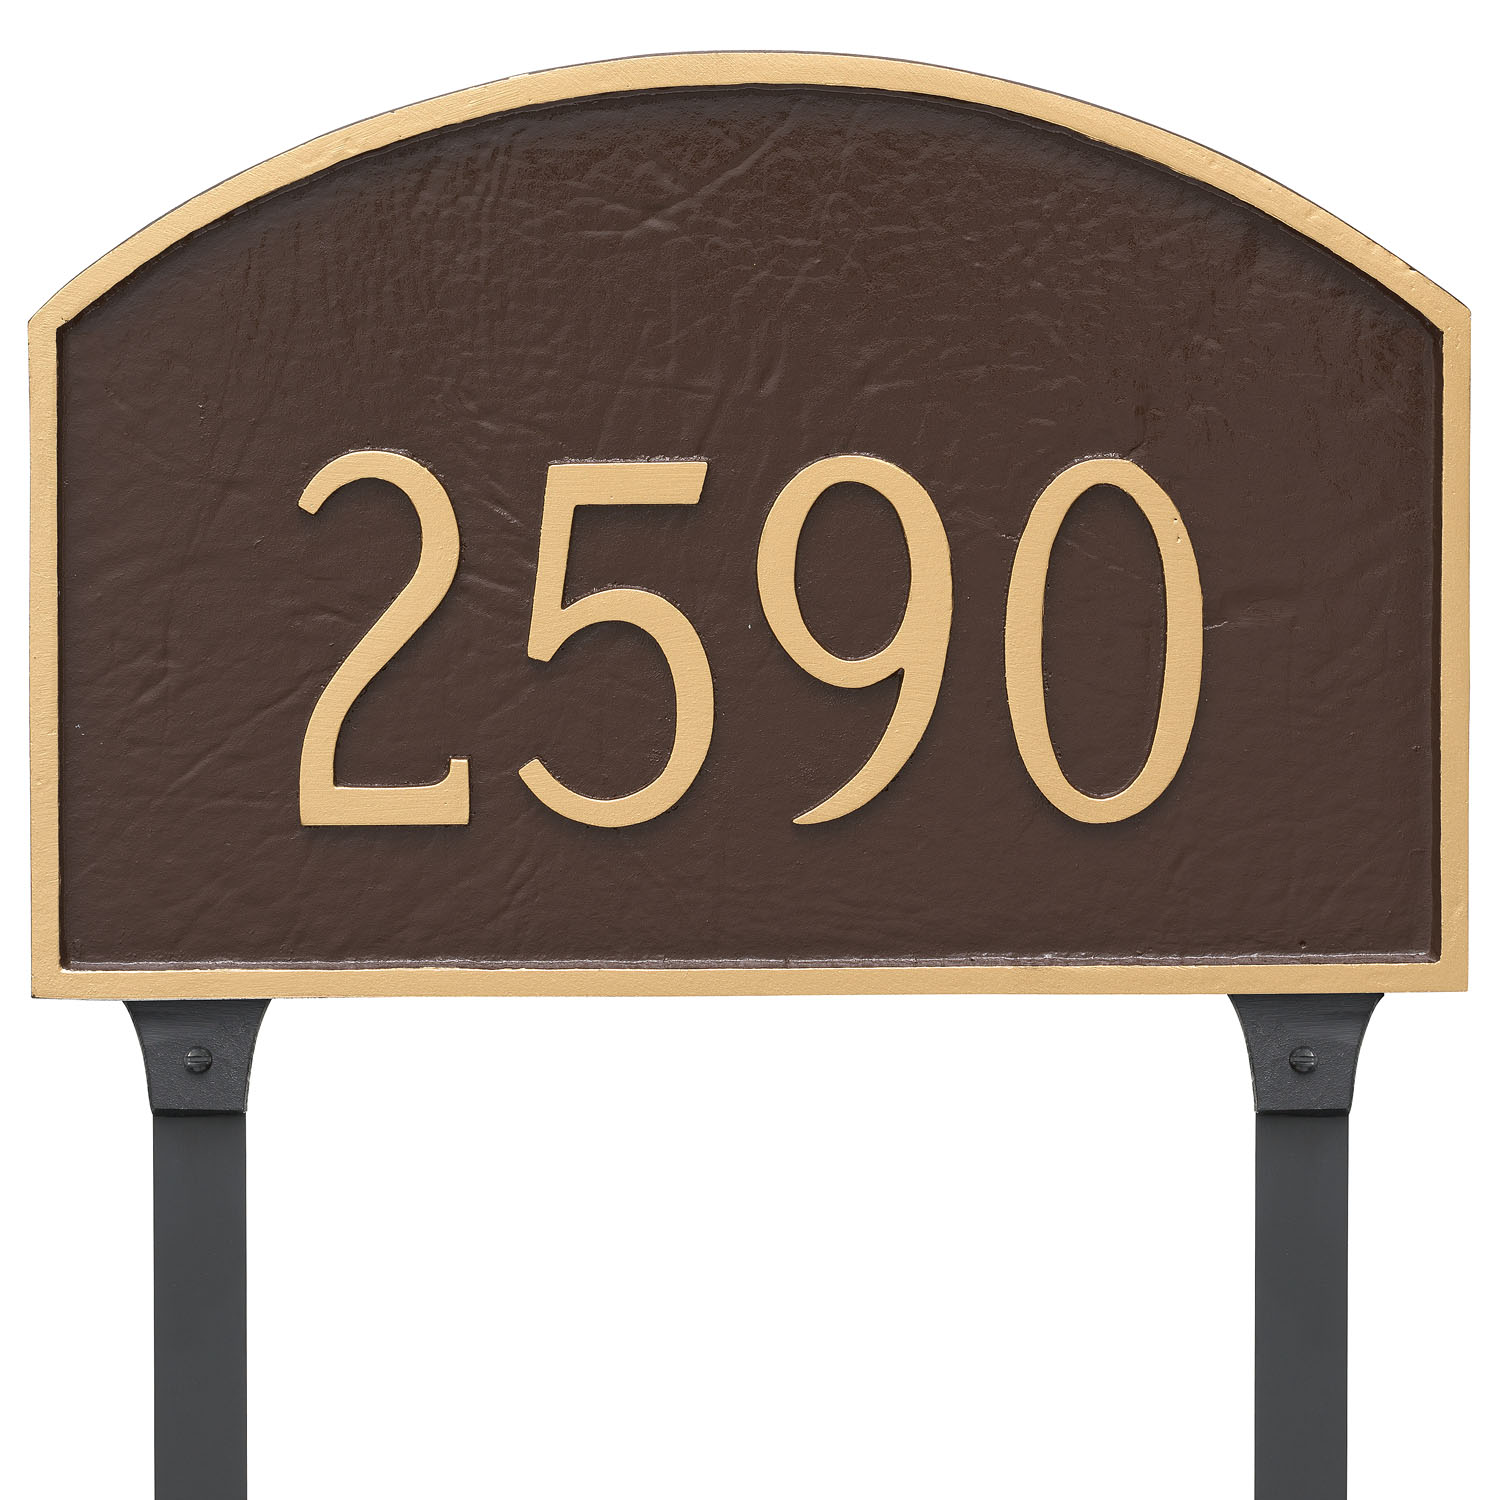 Prestige Arch Standard One Line Address Sign Plaque With Lawn Stakes The Address Number Store